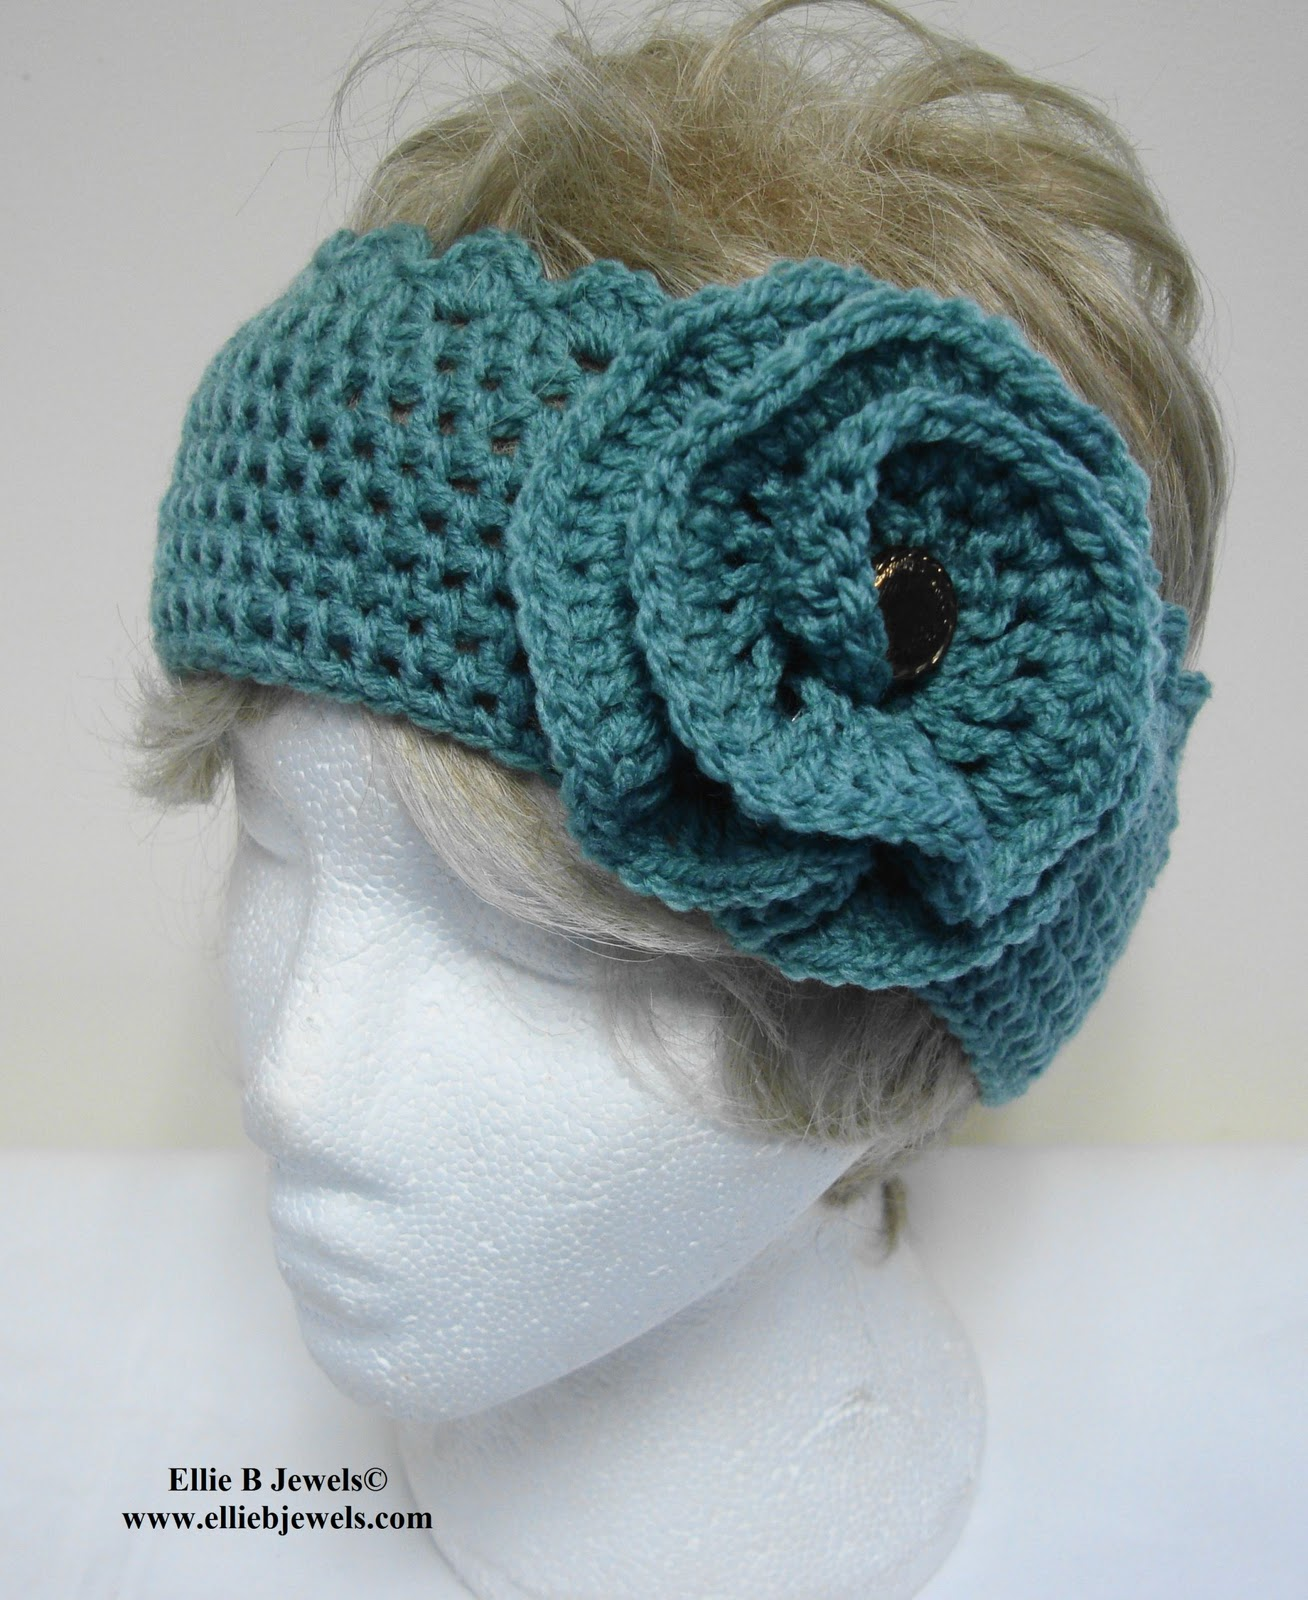 Crochet Ear Warmer : Free Crochet Ear Warmer Pattern